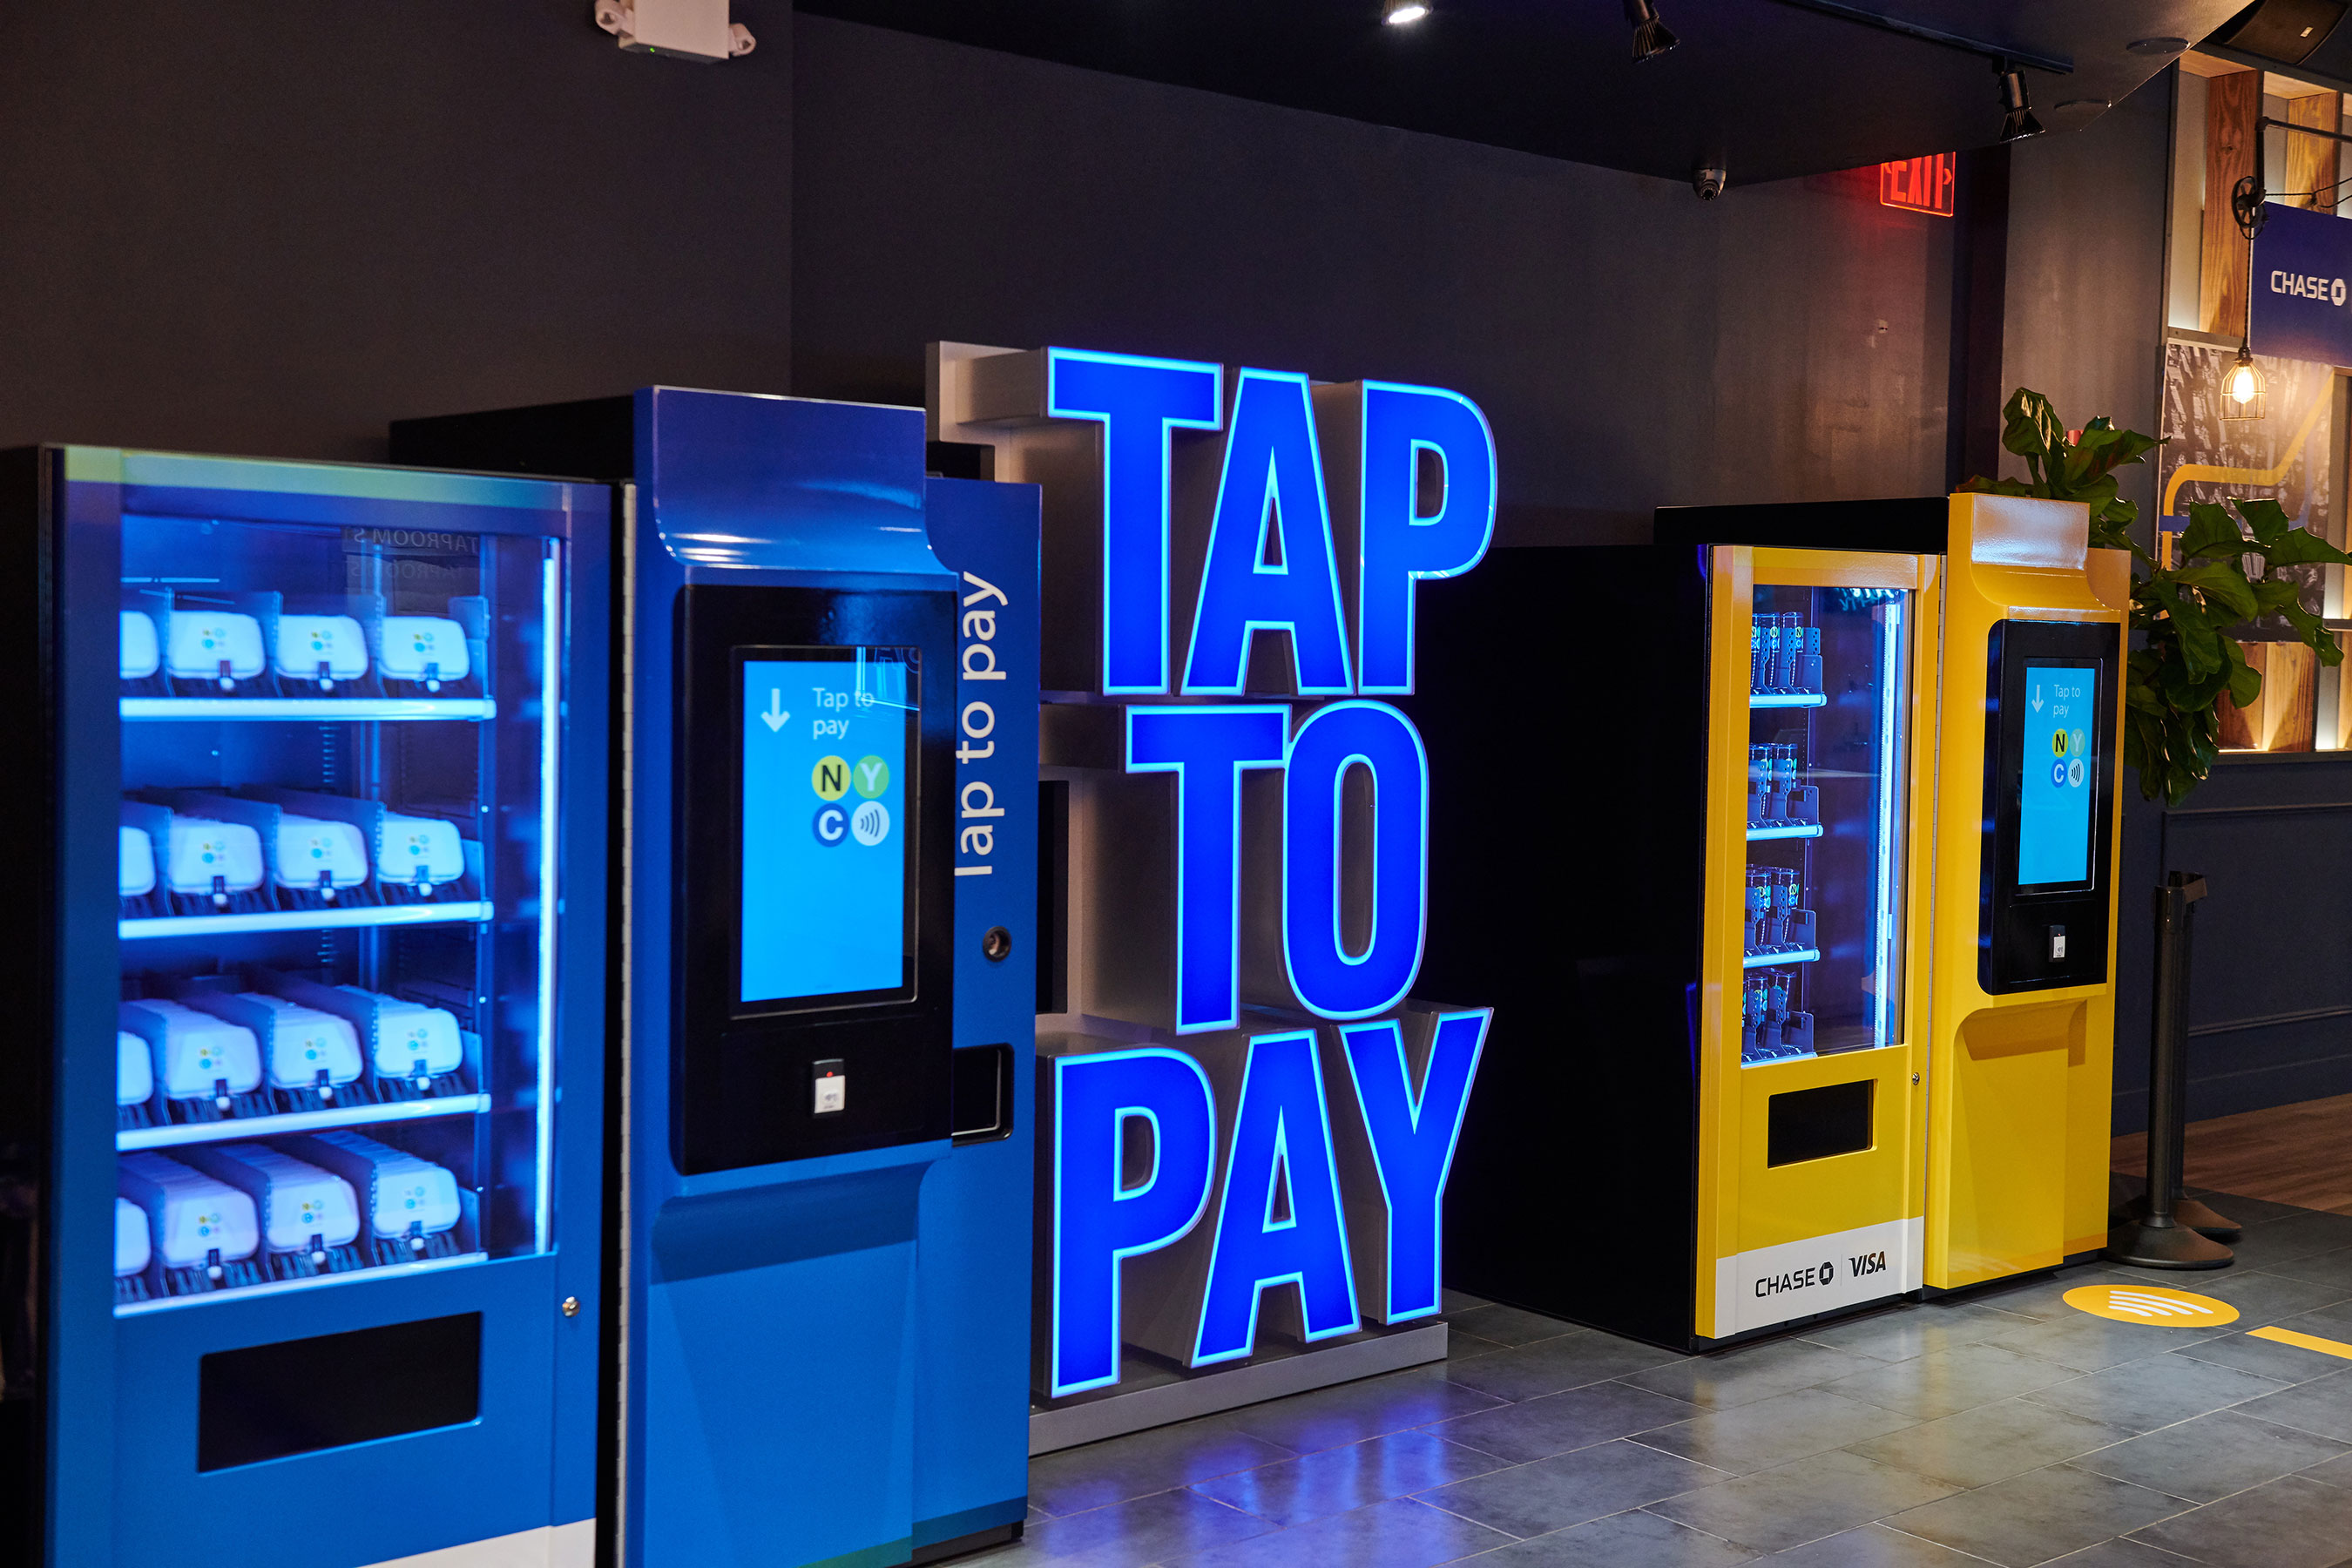 Visa and Chase celebrate the launch tap to pay cards coming to NYC public transit.